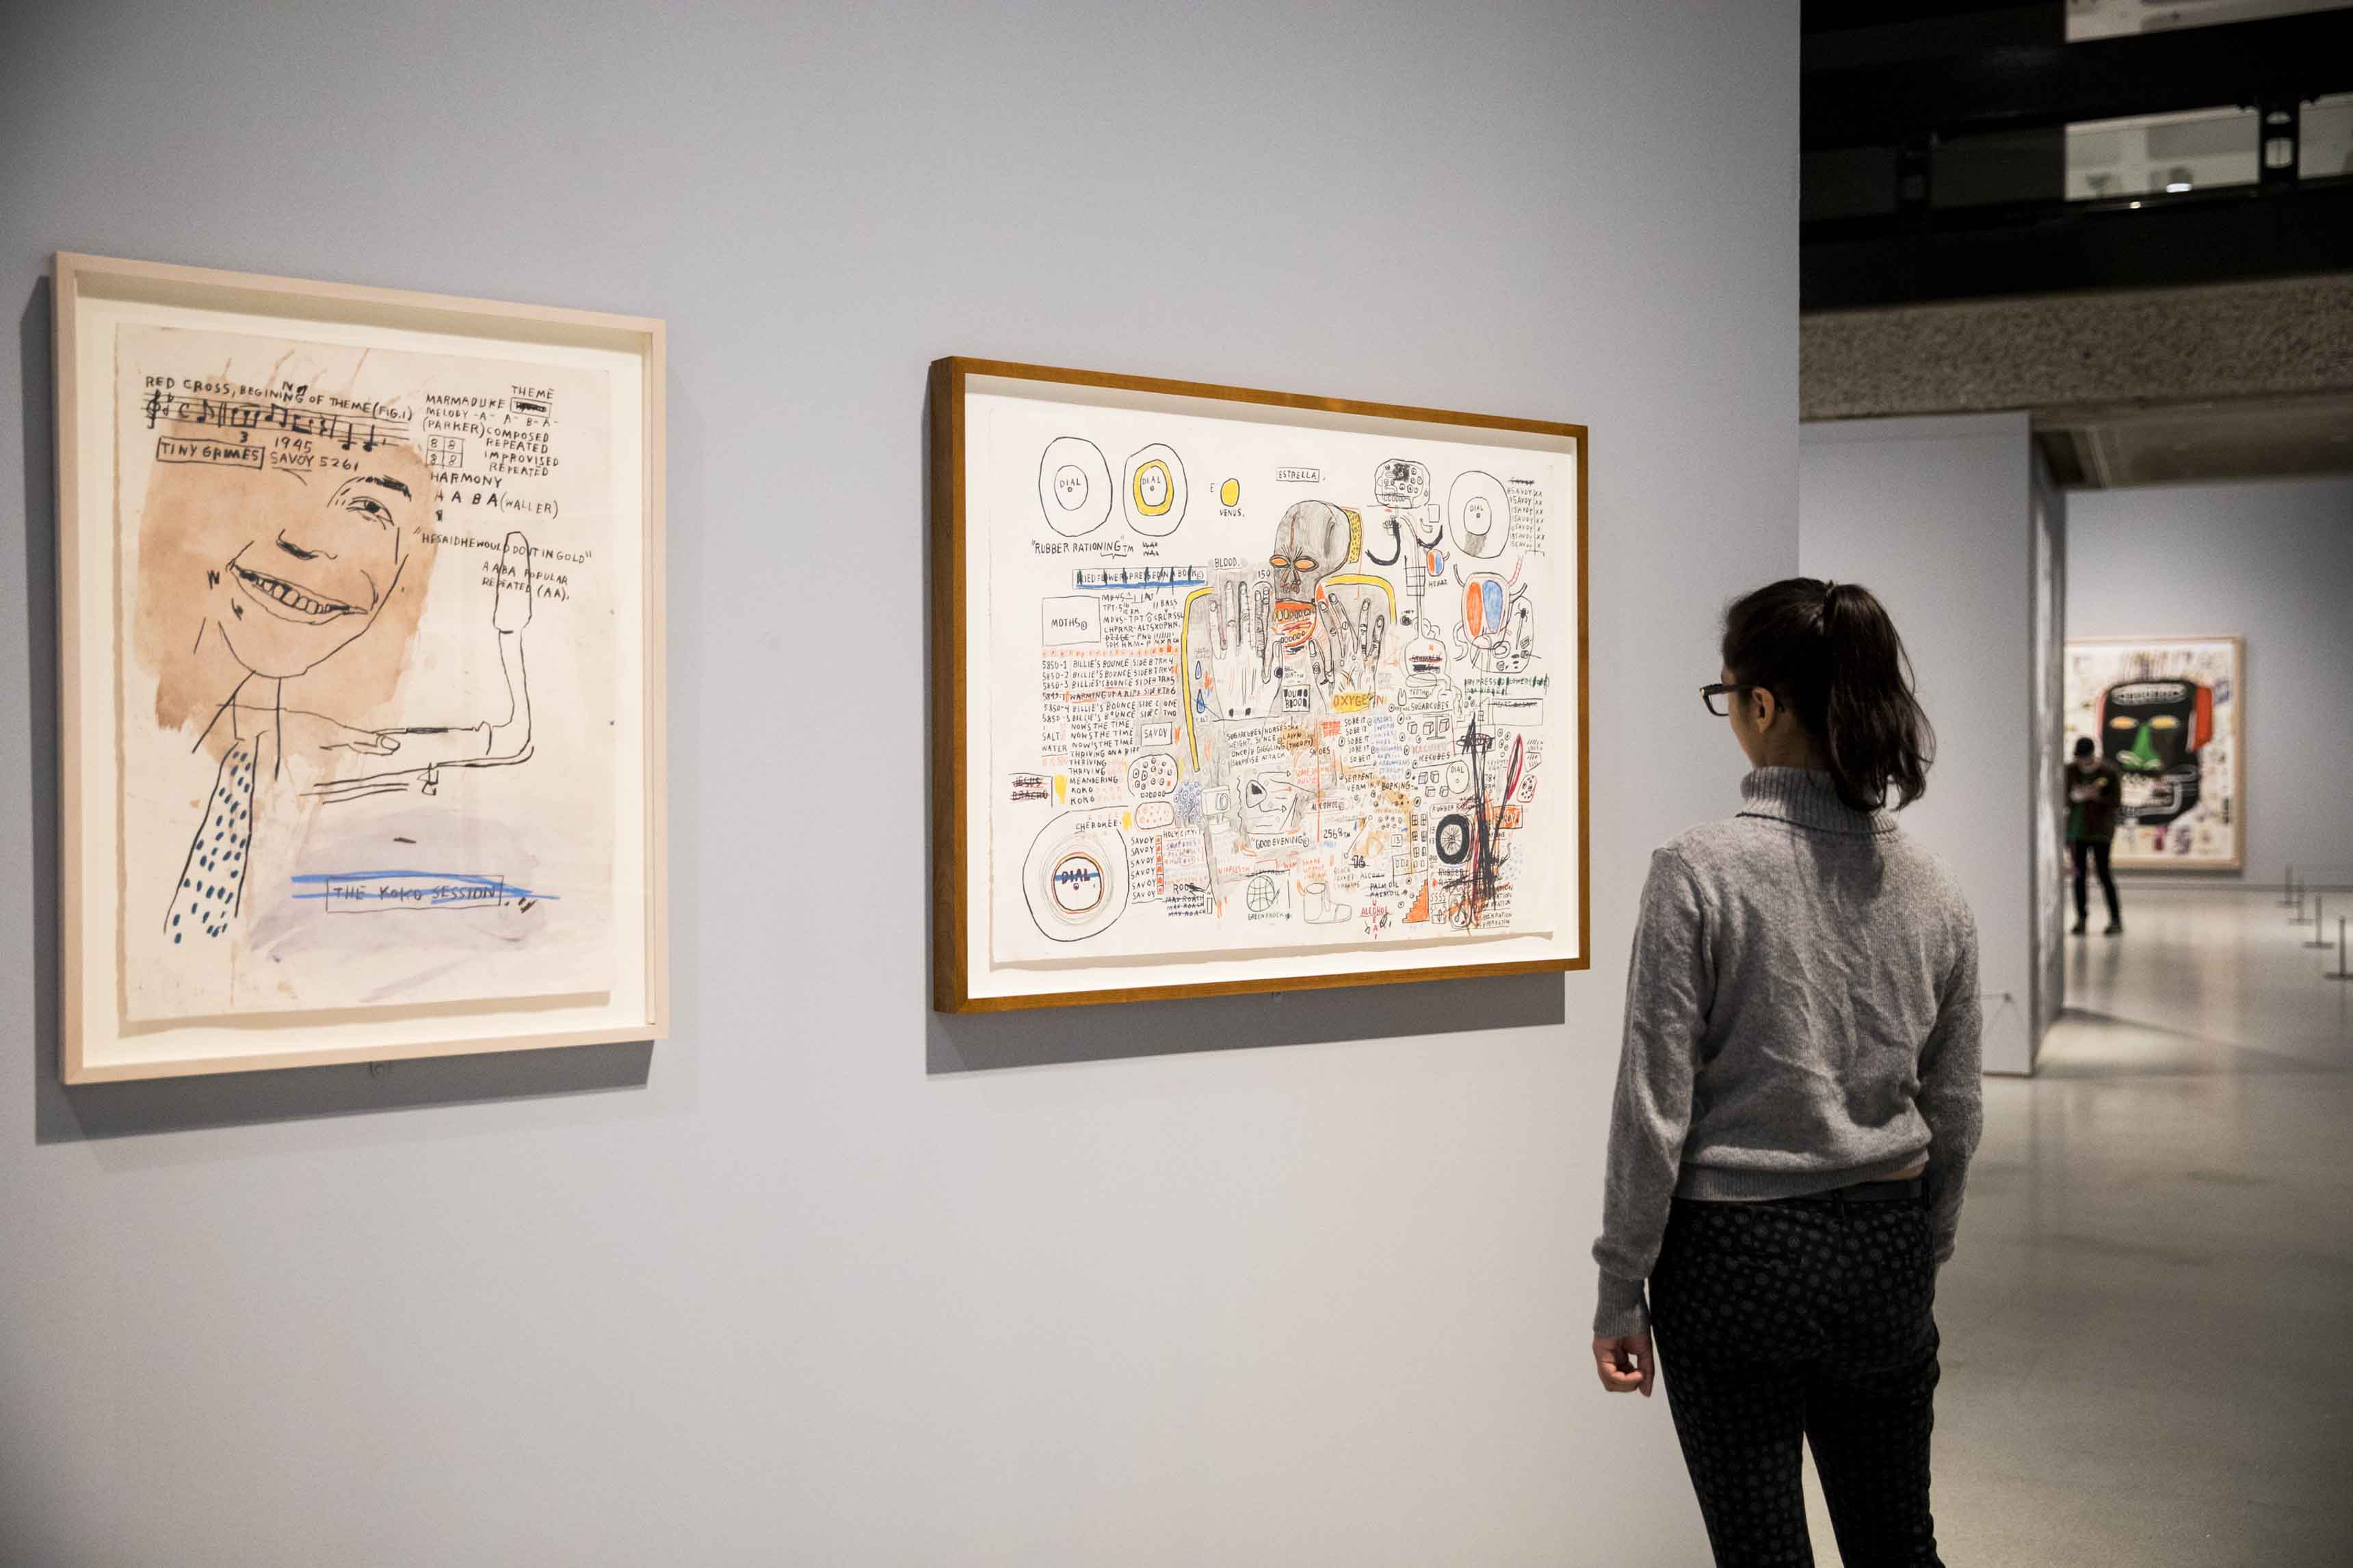 Basquiat: Boom For Real Installation view Barbican Art Gallery 21 September 2017 – 28 January 2018 © Tristan Fewings / Getty Images Artworks: © The Estate of Jean-Michel Basquiat. Licensed by Artestar, New York